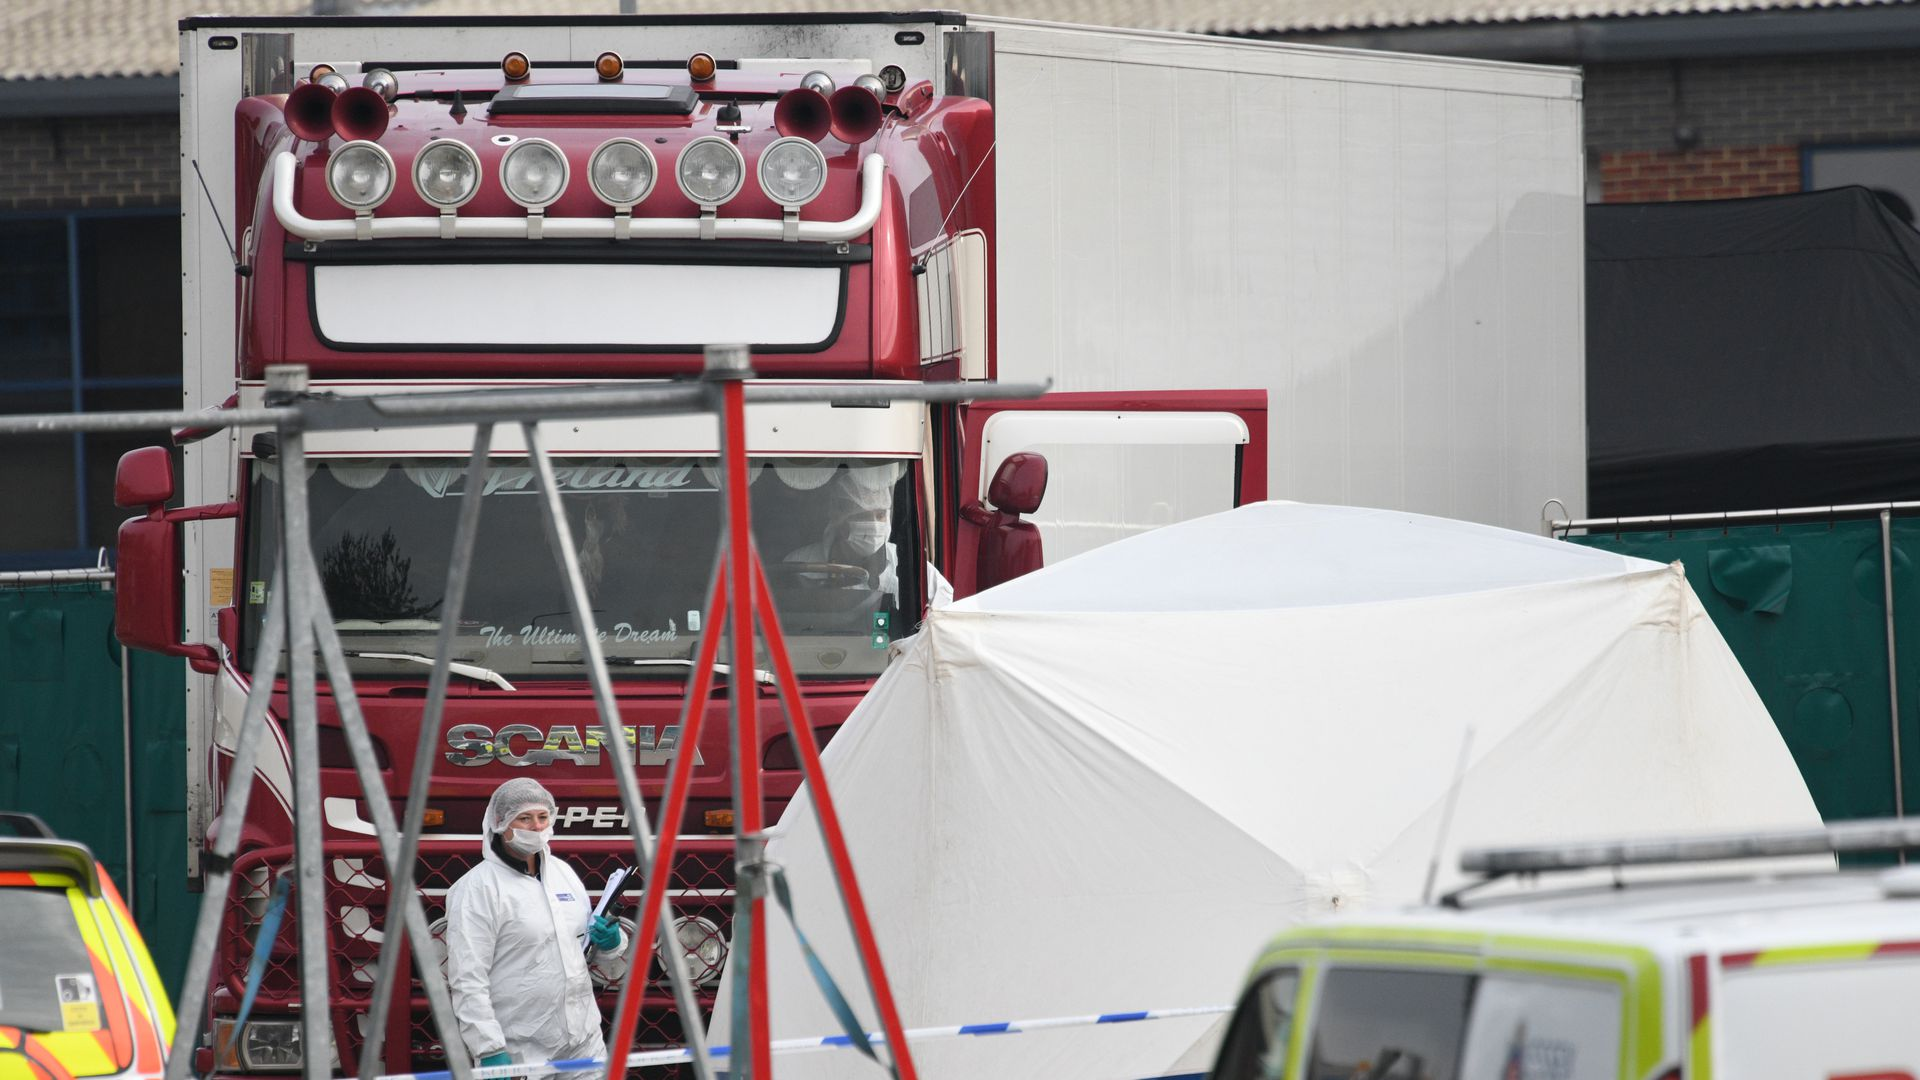 Forensic officers stand in front of the truck in which 39 bodies were discovered.